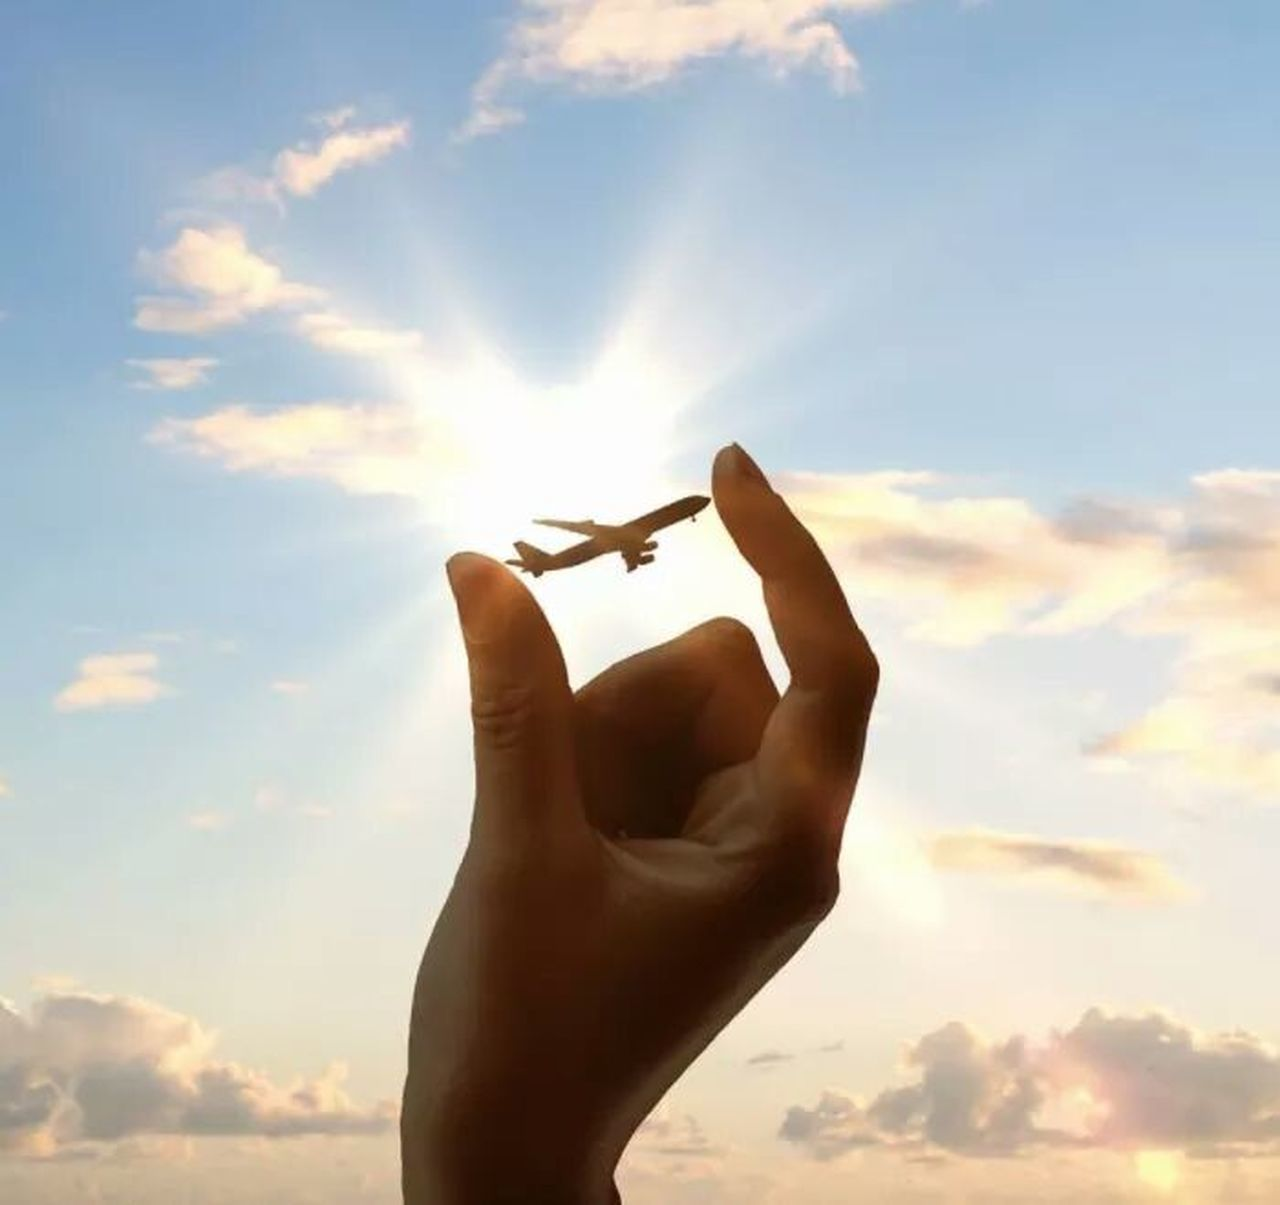 sky, cloud - sky, flying, human hand, one person, silhouette, human body part, real people, outdoors, sunlight, low angle view, day, airplane, nature, close-up, people